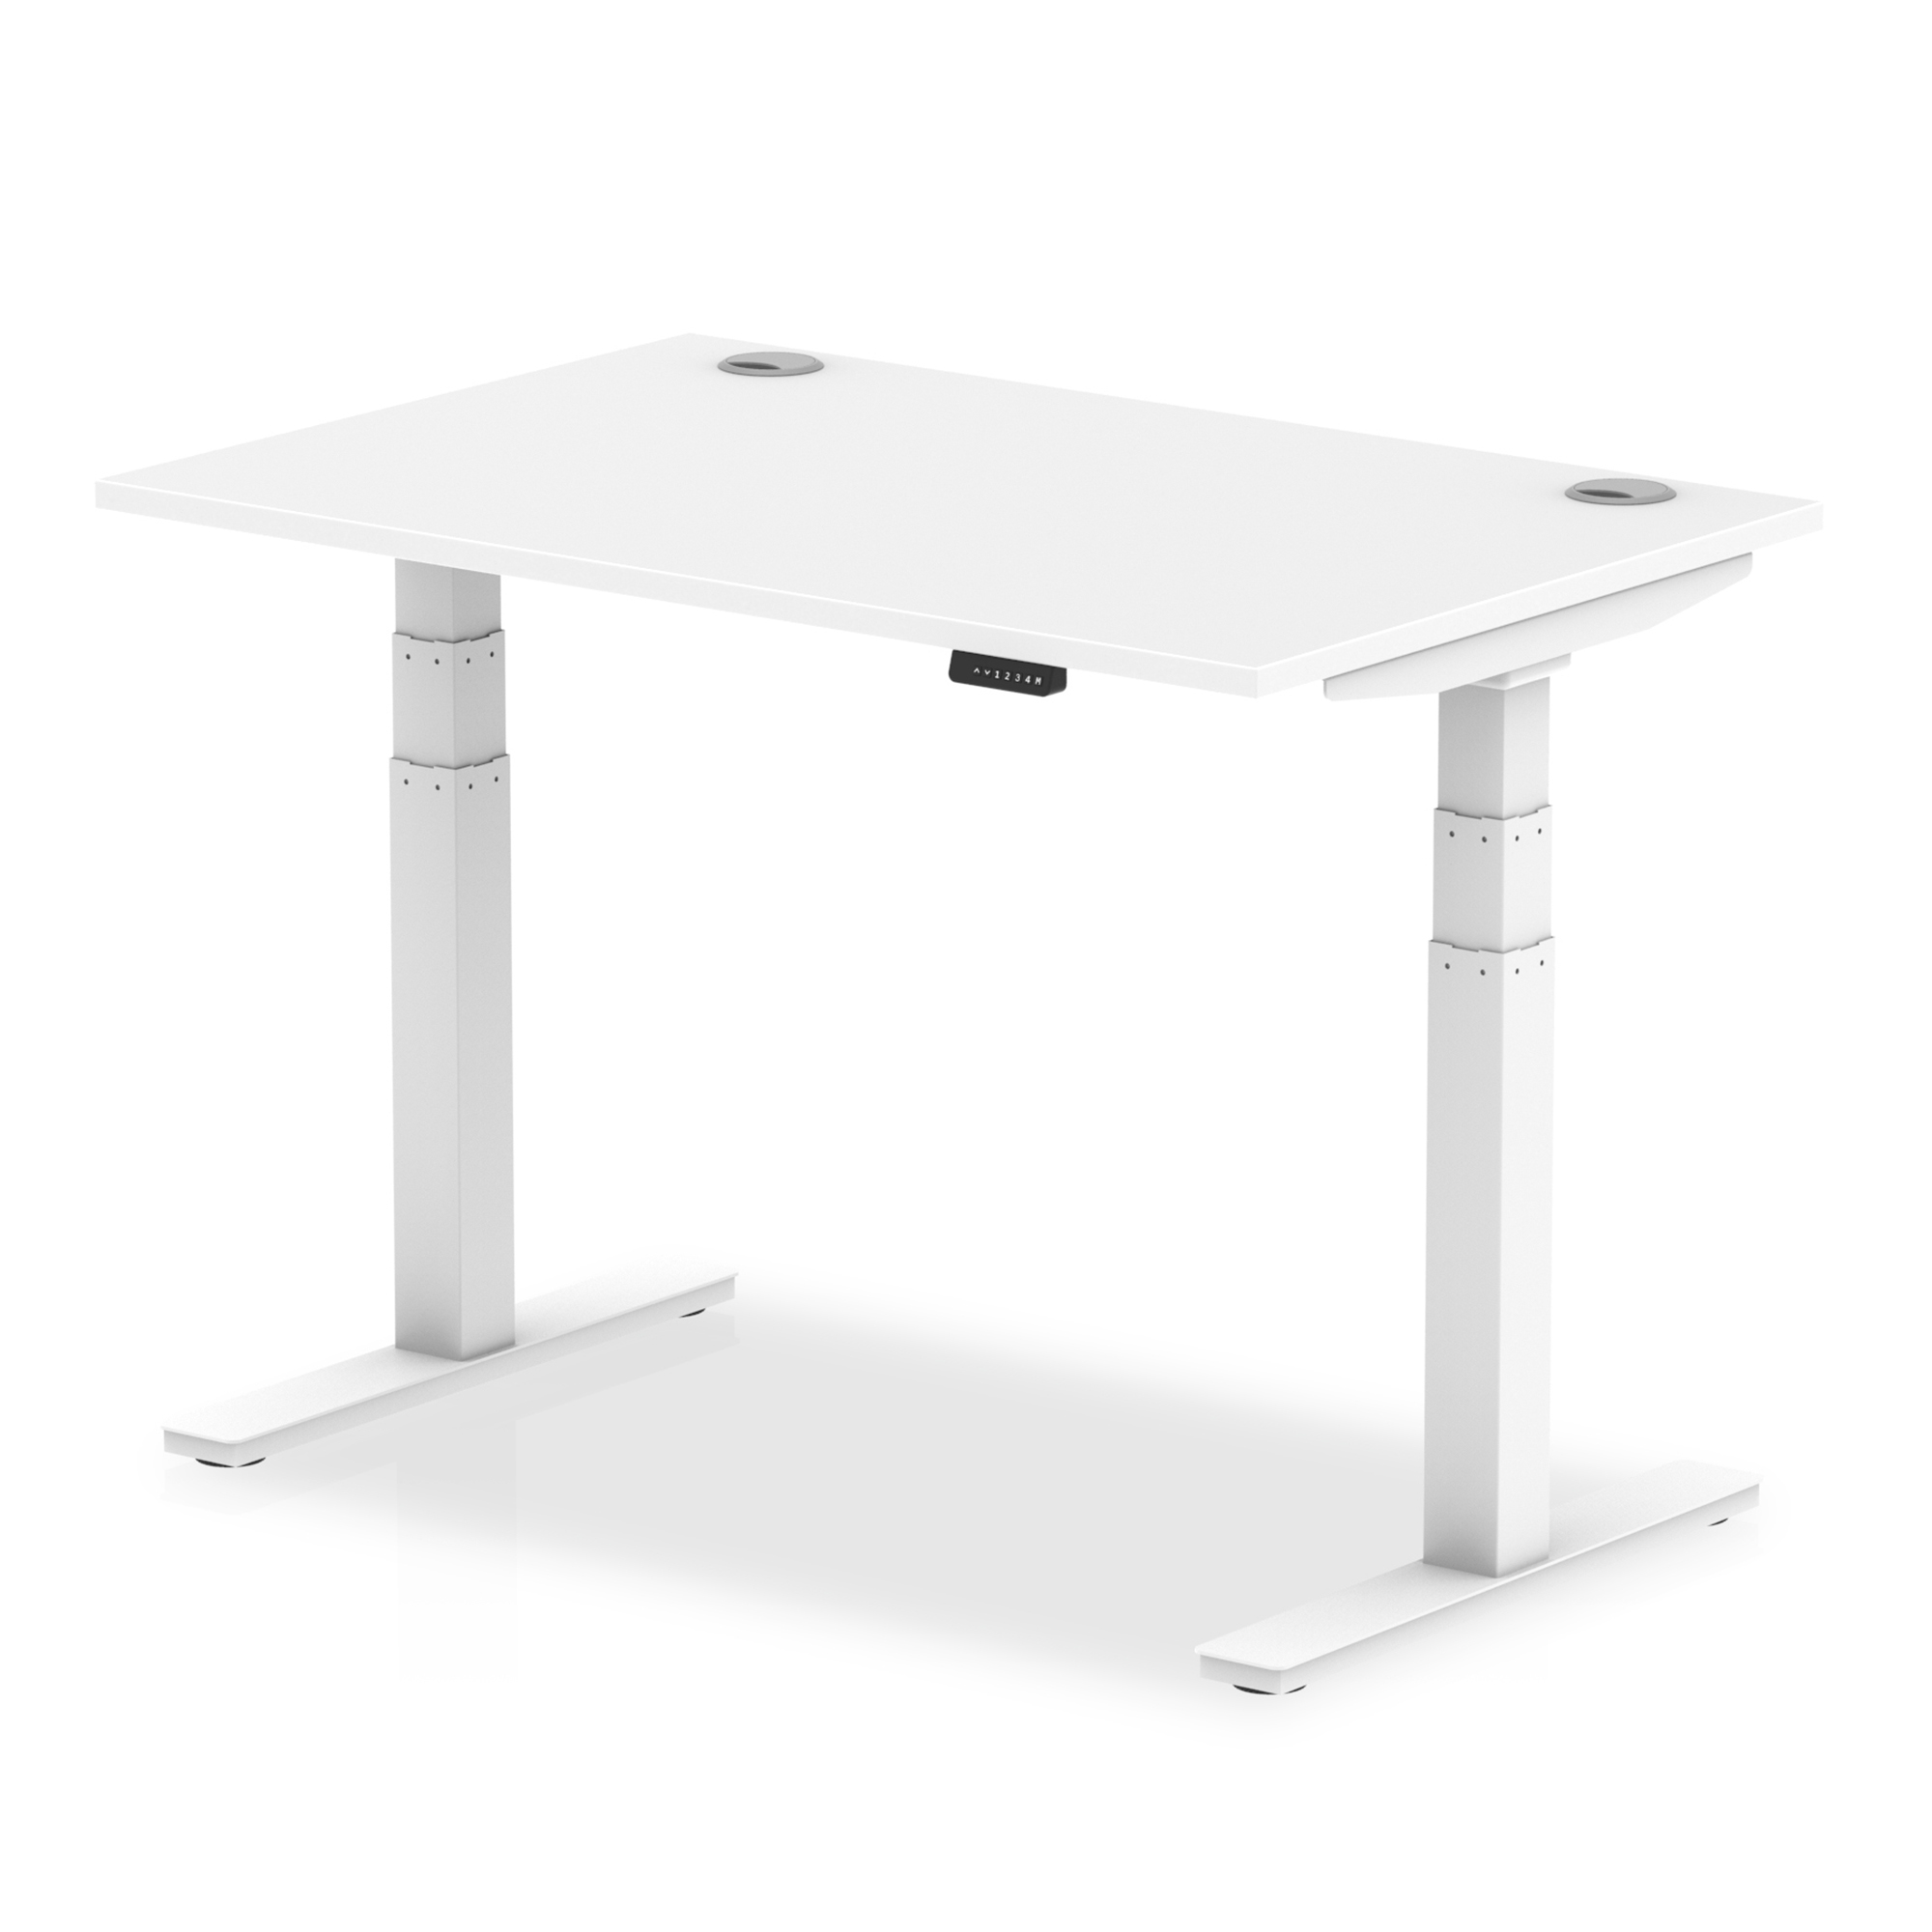 Trexus Sit Stand Desk With Cable Ports White Legs 1200x800mm White Ref HA01109